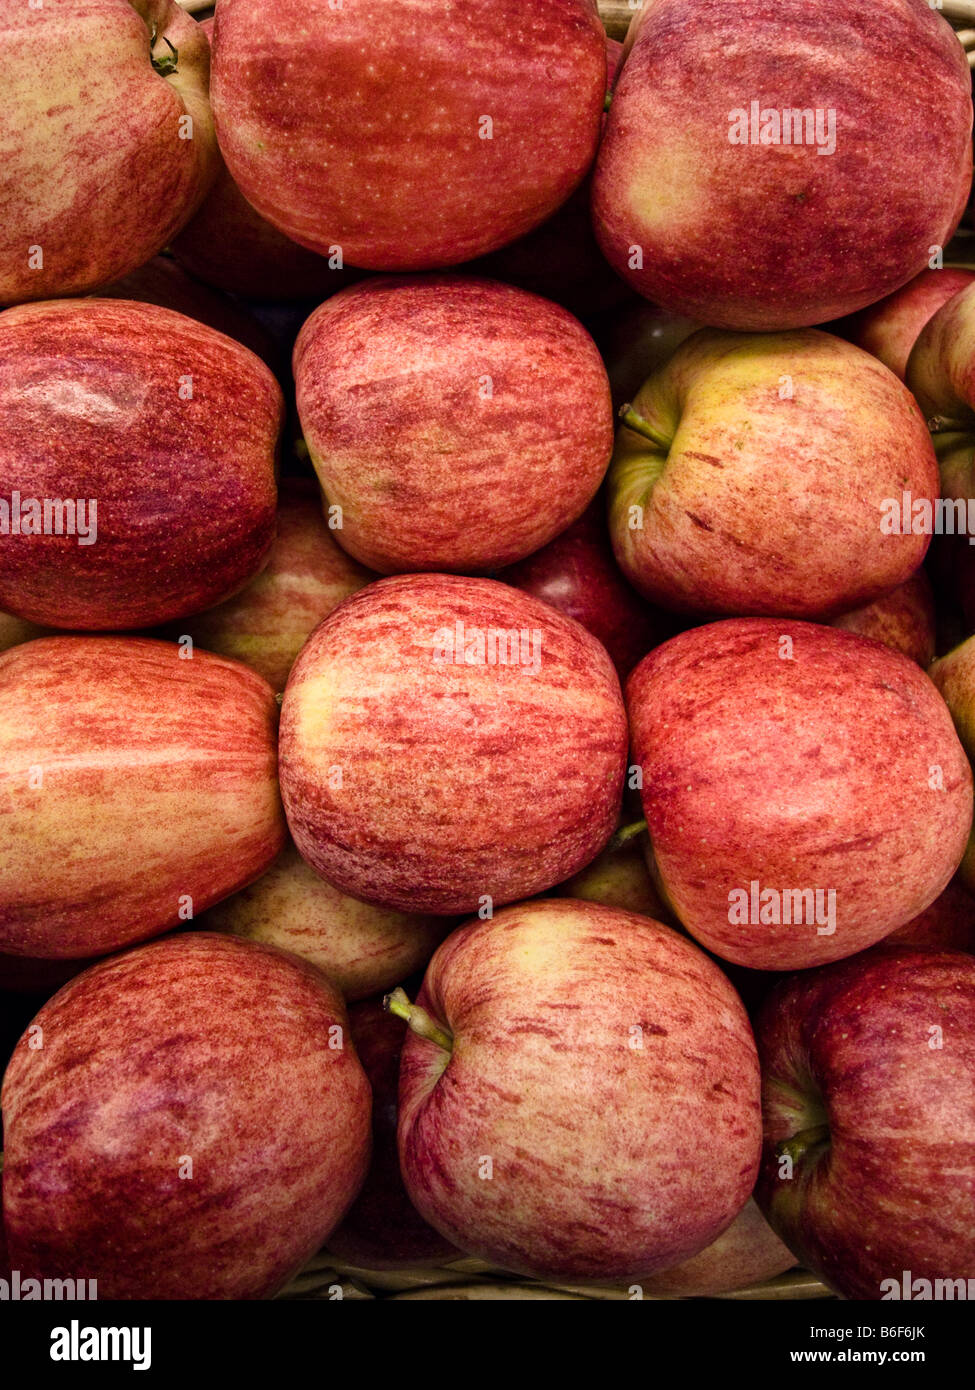 Pile of Gala Apples - Stock Image